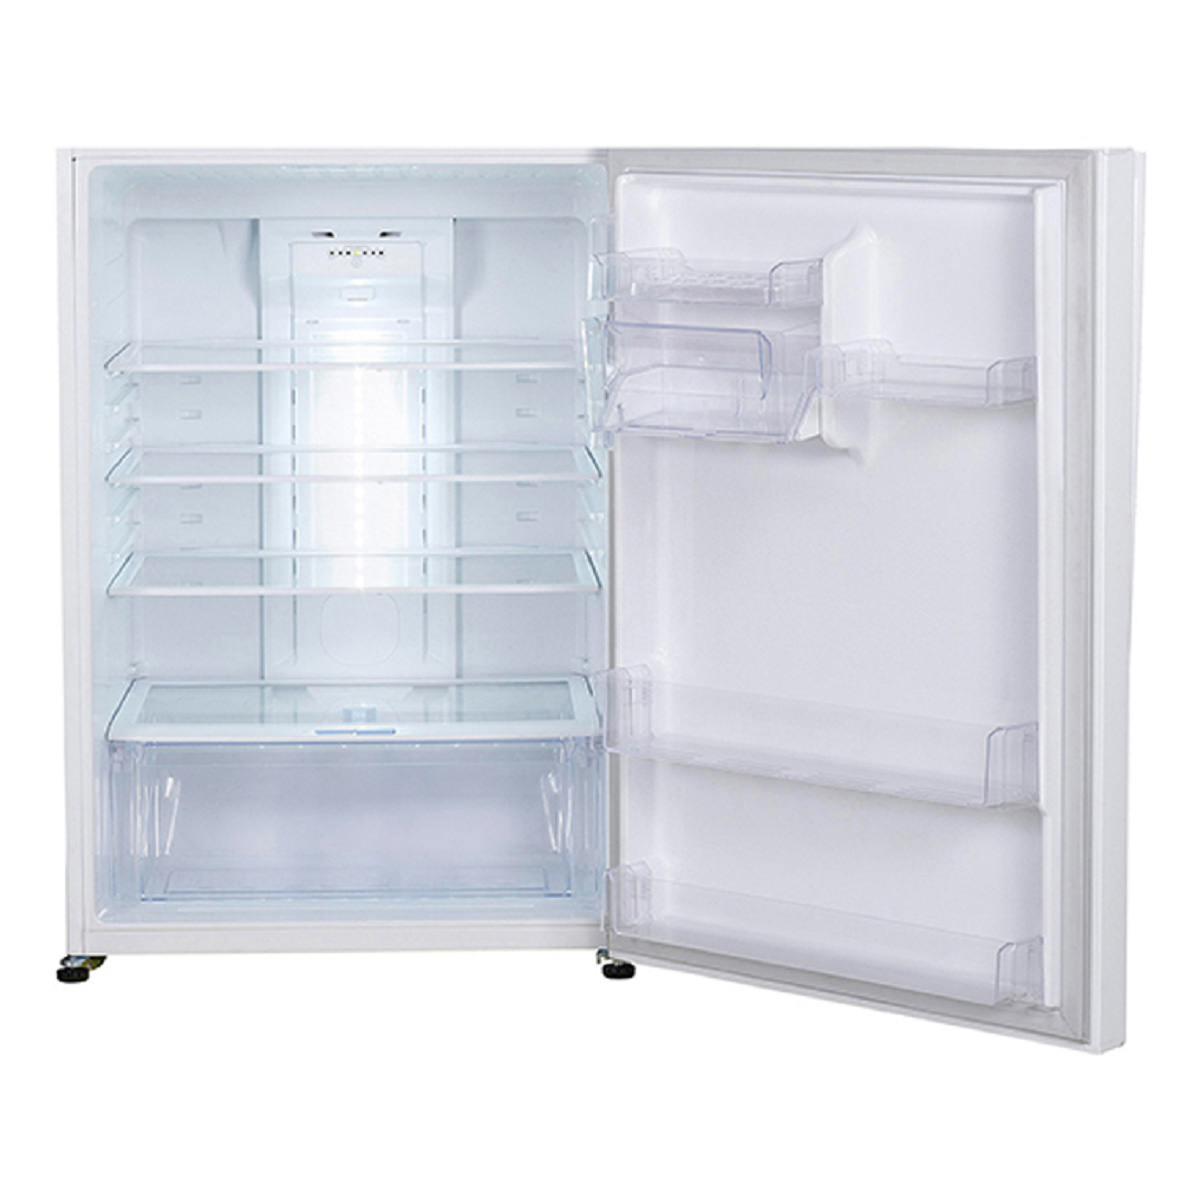 LG GT-442BWL 442litres Top Mount Fridge 35866